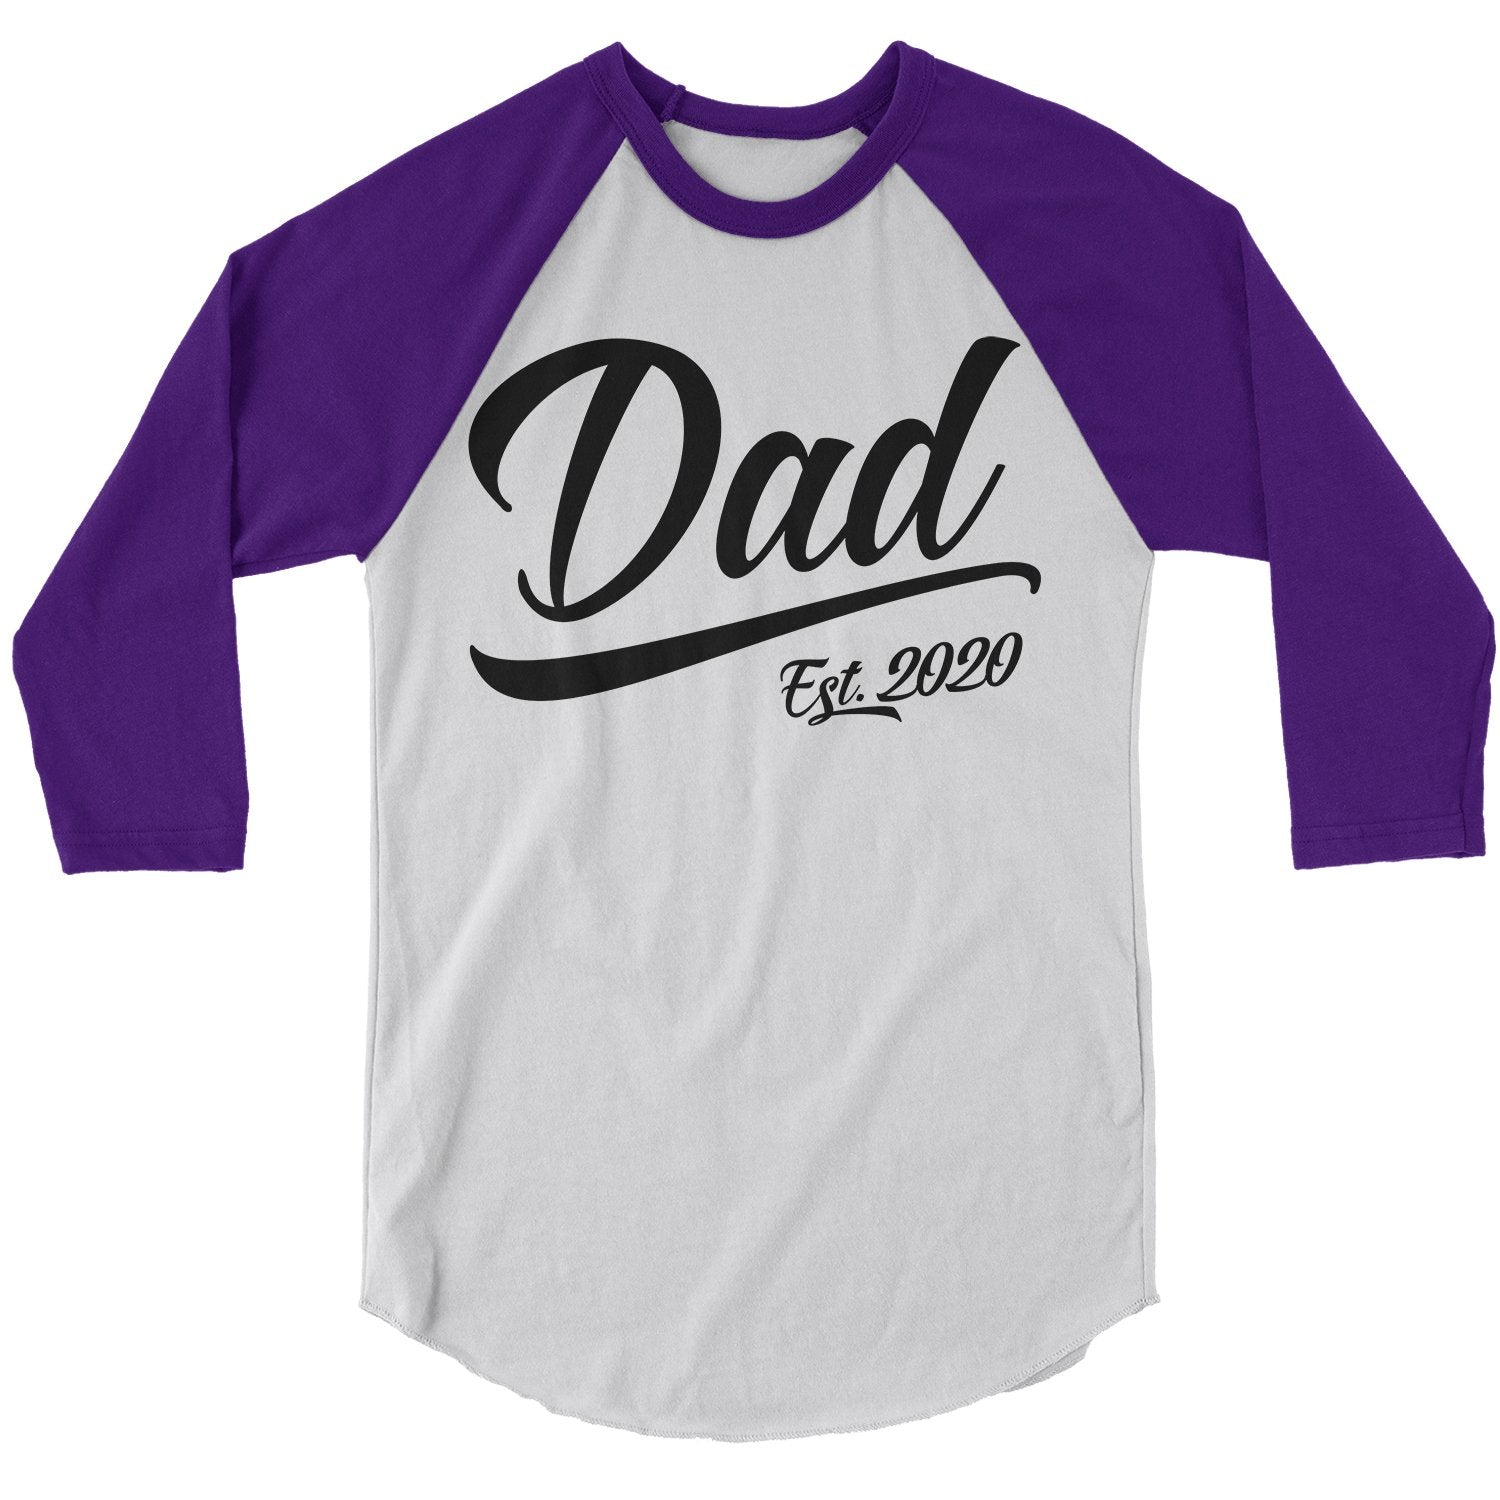 Proud Dad Childrens Long Sleeve T-Shirt Boys Cotton Tee Tops